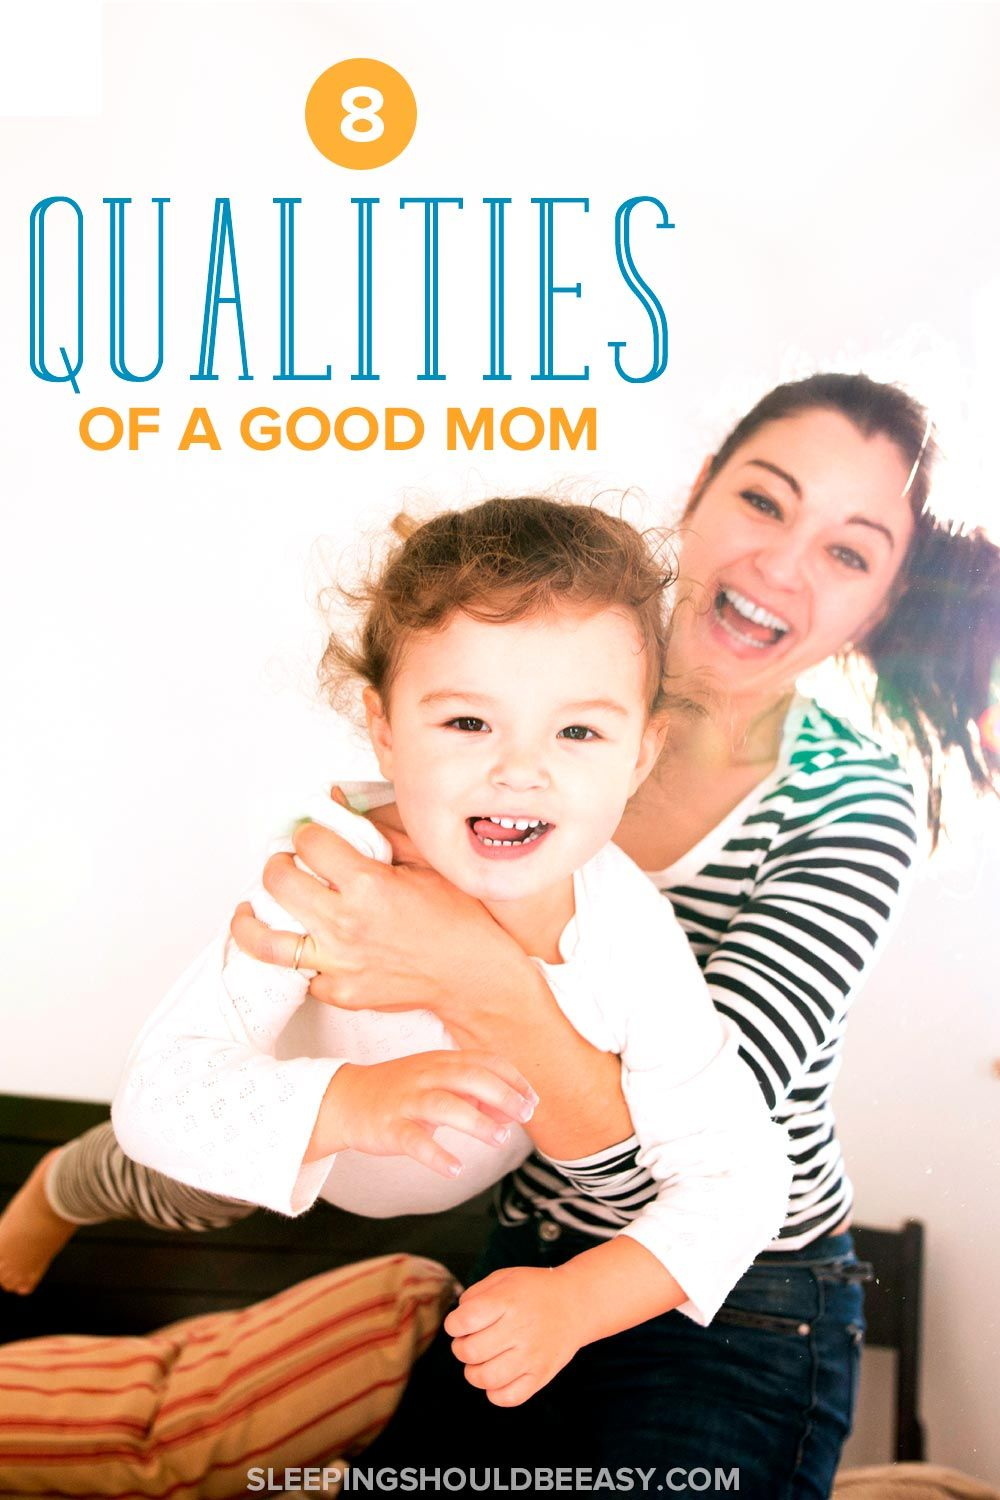 the qualities of a good mother How to be a good mother four parts: talking to your child examples developing a parenting plan being a role model caring for yourself community q&a the definition of a good mother varies depending on who you ask the most important thing is to love your children and to make sure they feel loved.